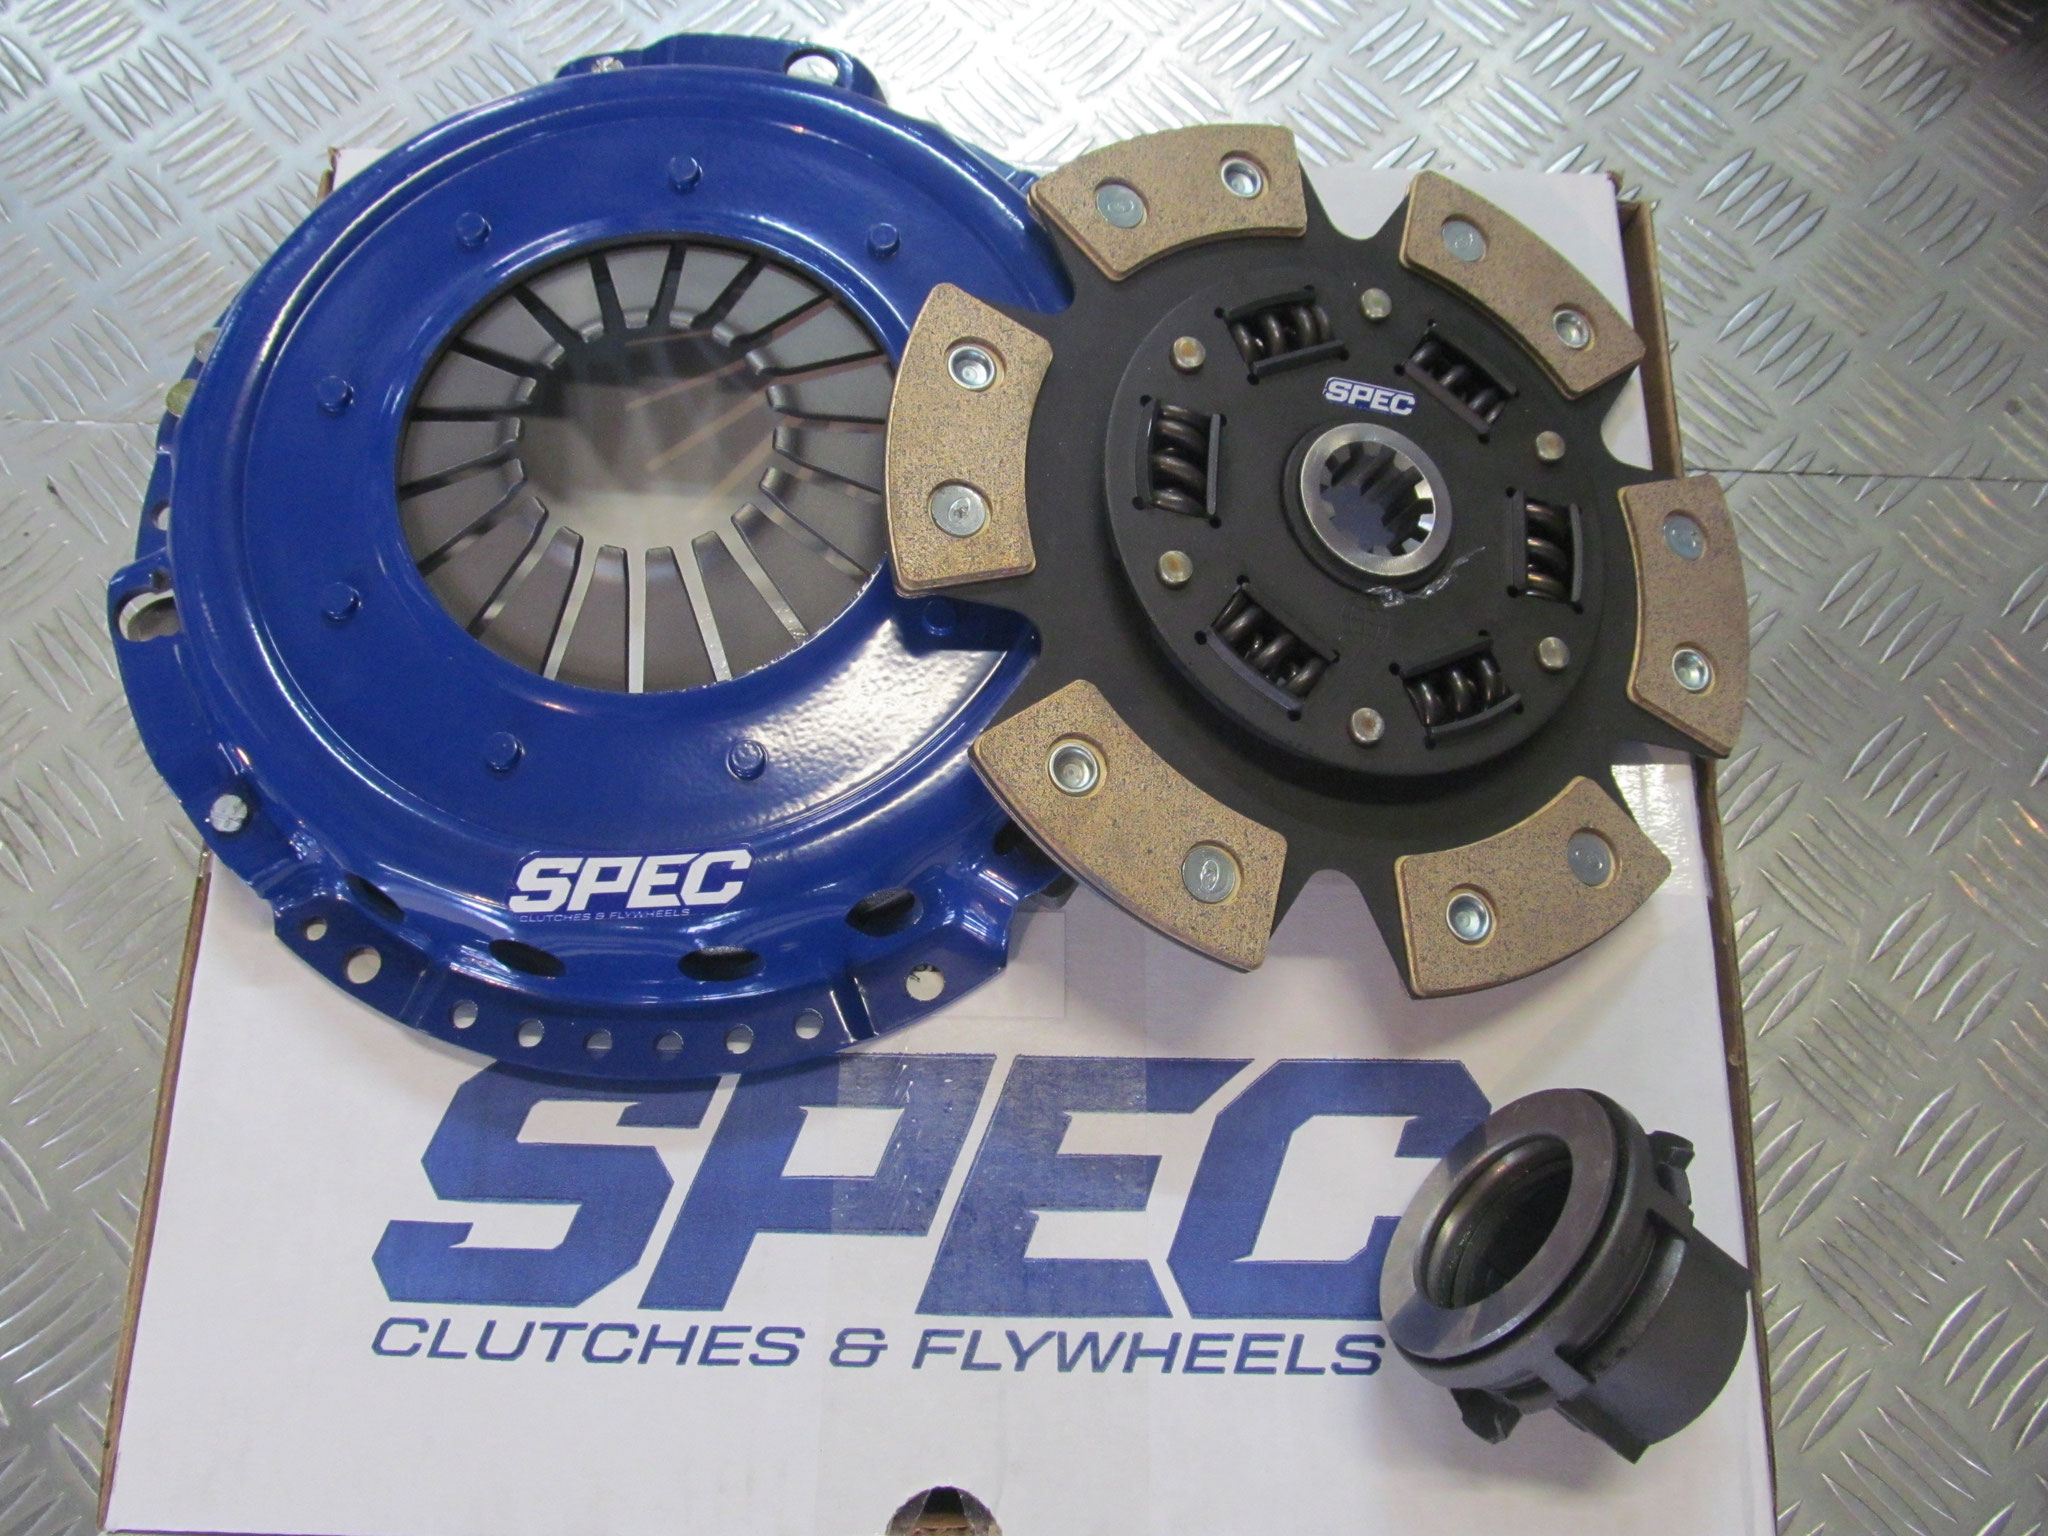 M20 M50 Spec performance race clutch